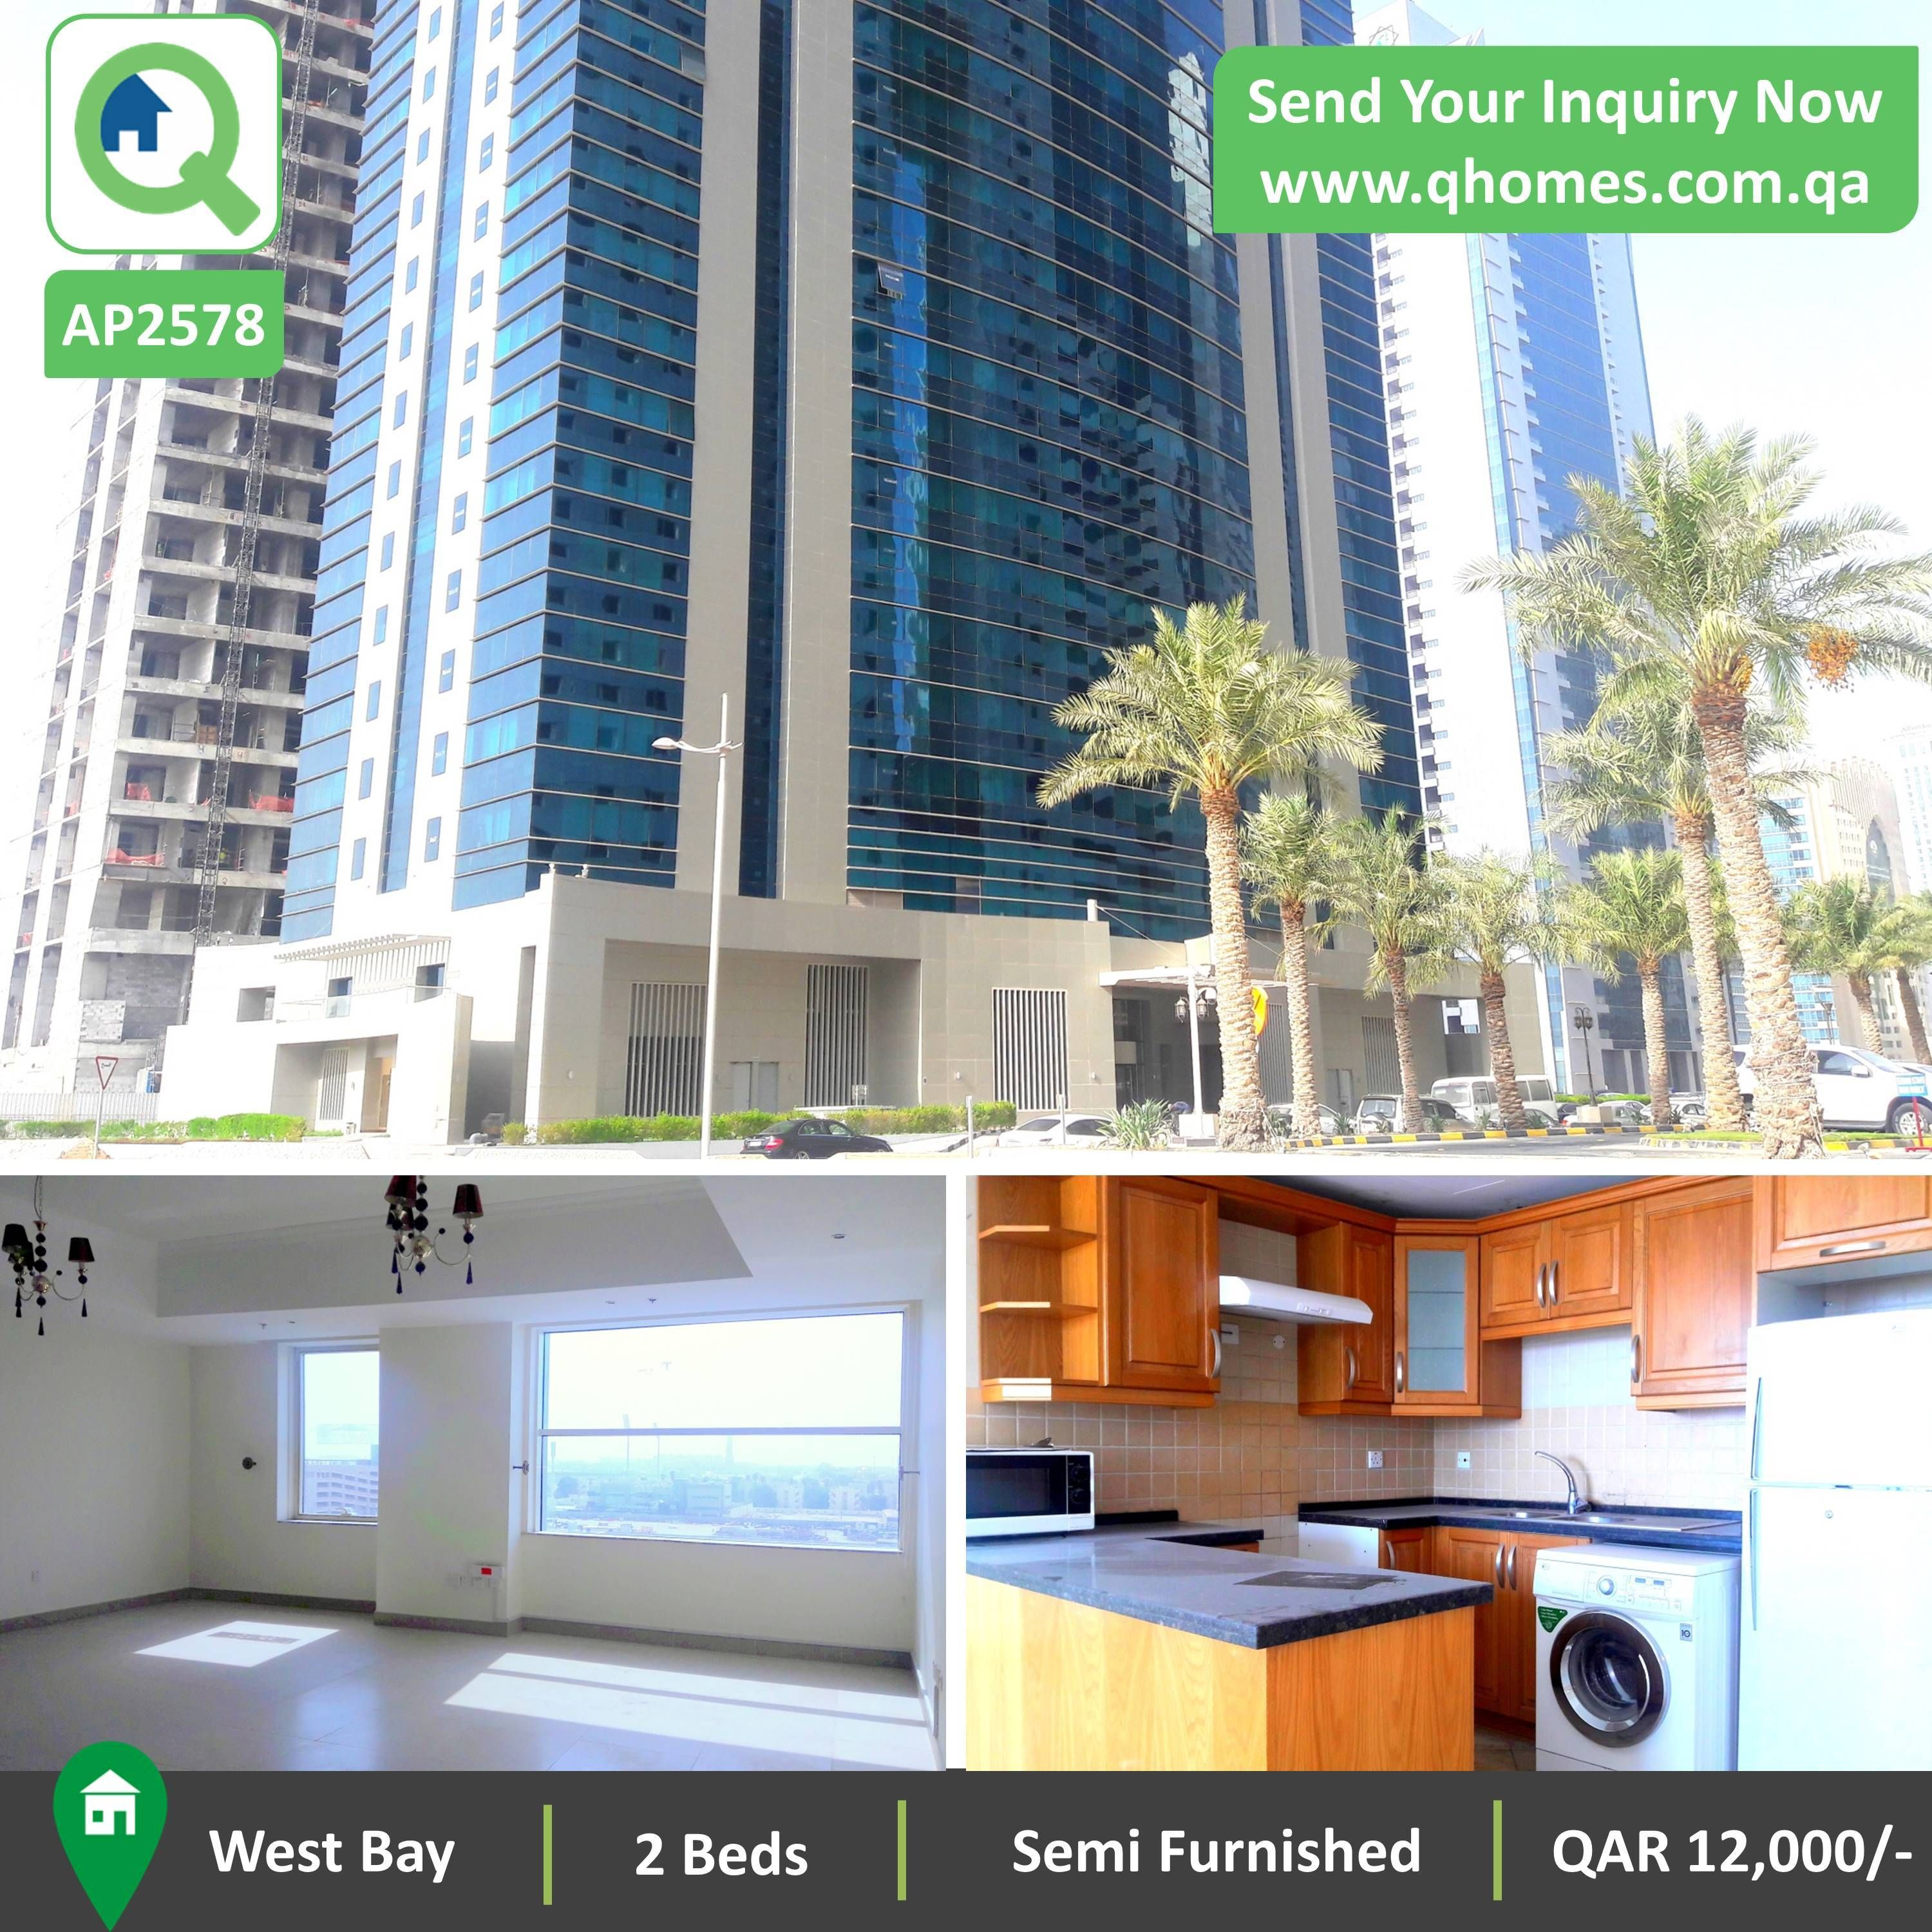 Apartment For Rent In Qatar: Luxurious Semi Furnished 2